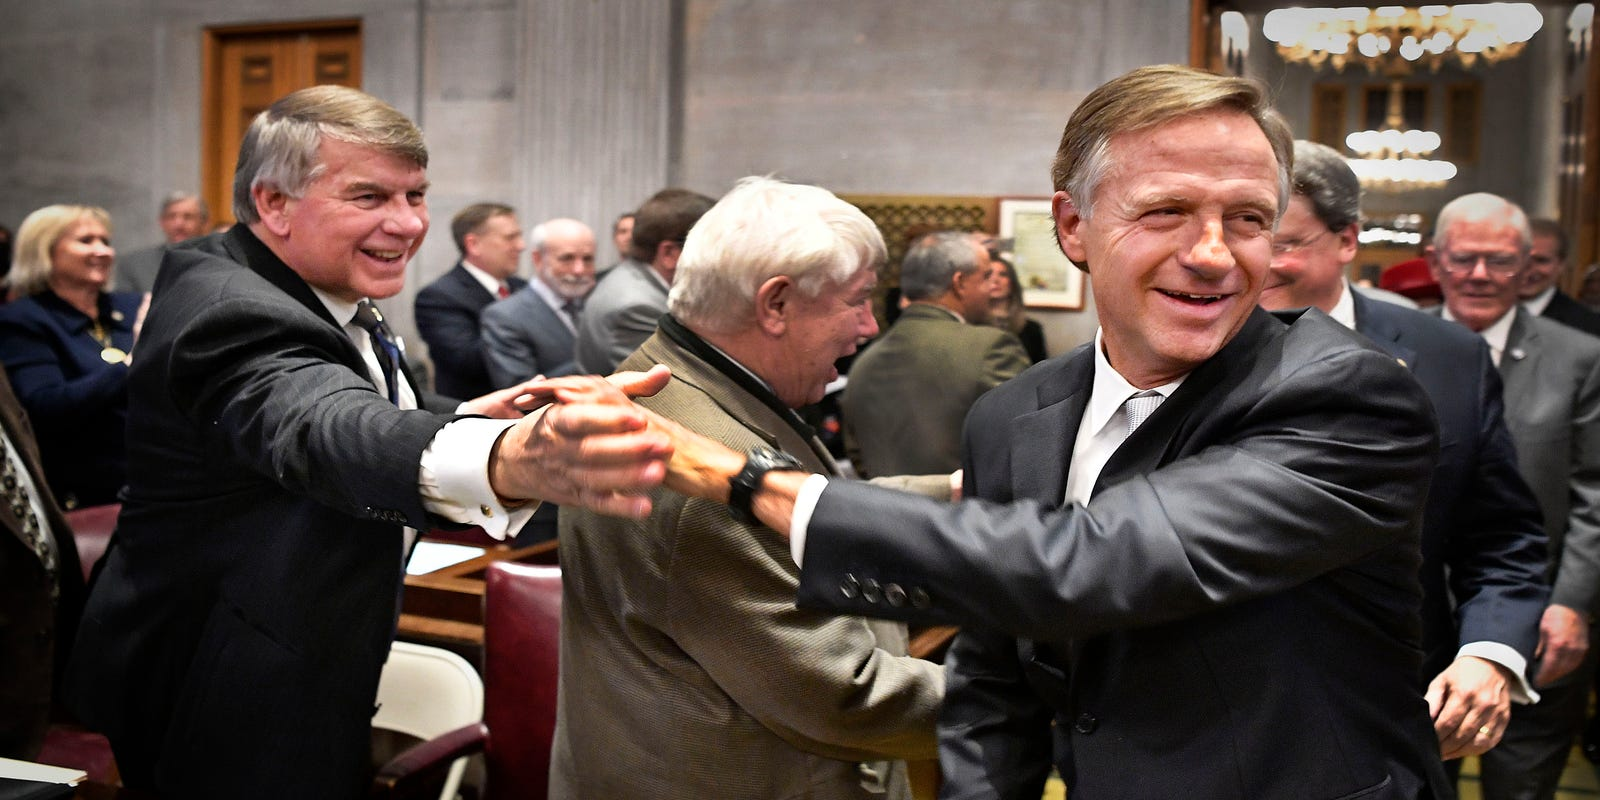 Tennessee election: Former Governor Bill Haslam won't run for Senate